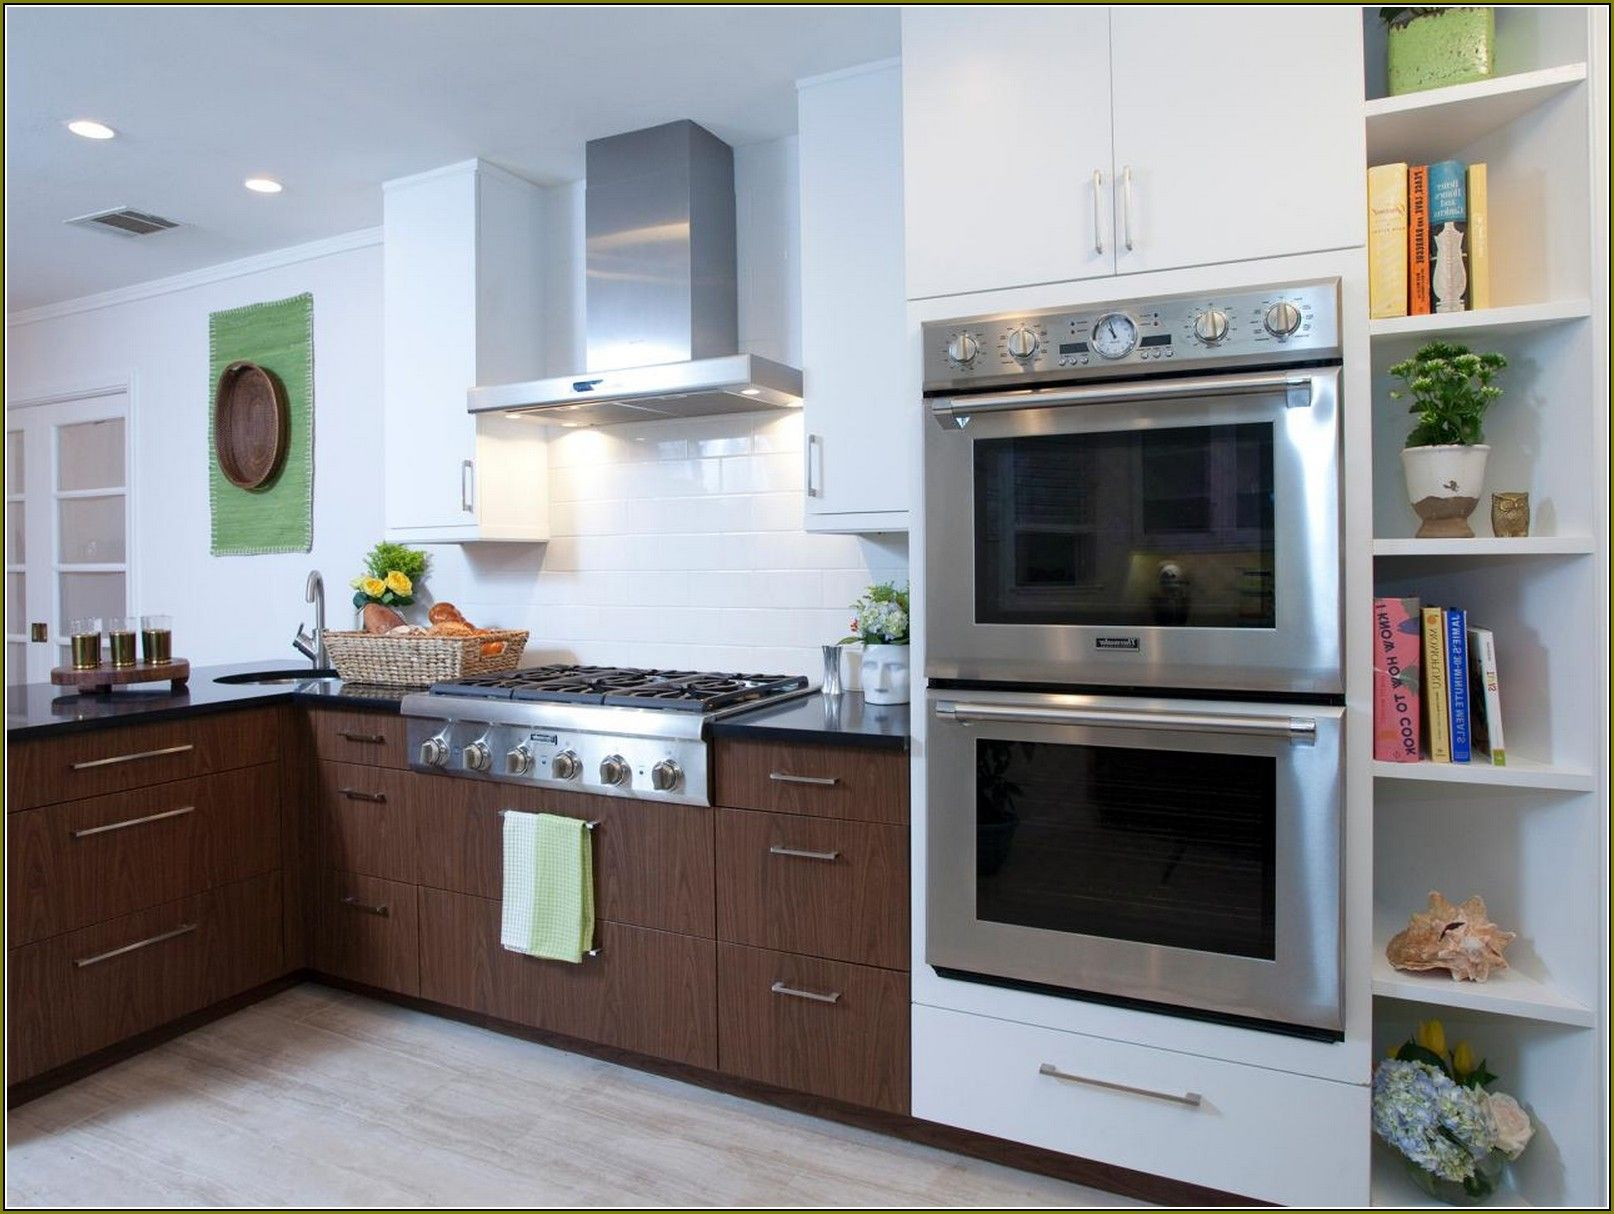 Double Oven Cabinet Home Depot Home Design Ideas Oven Cabinet Wall Oven Double Oven